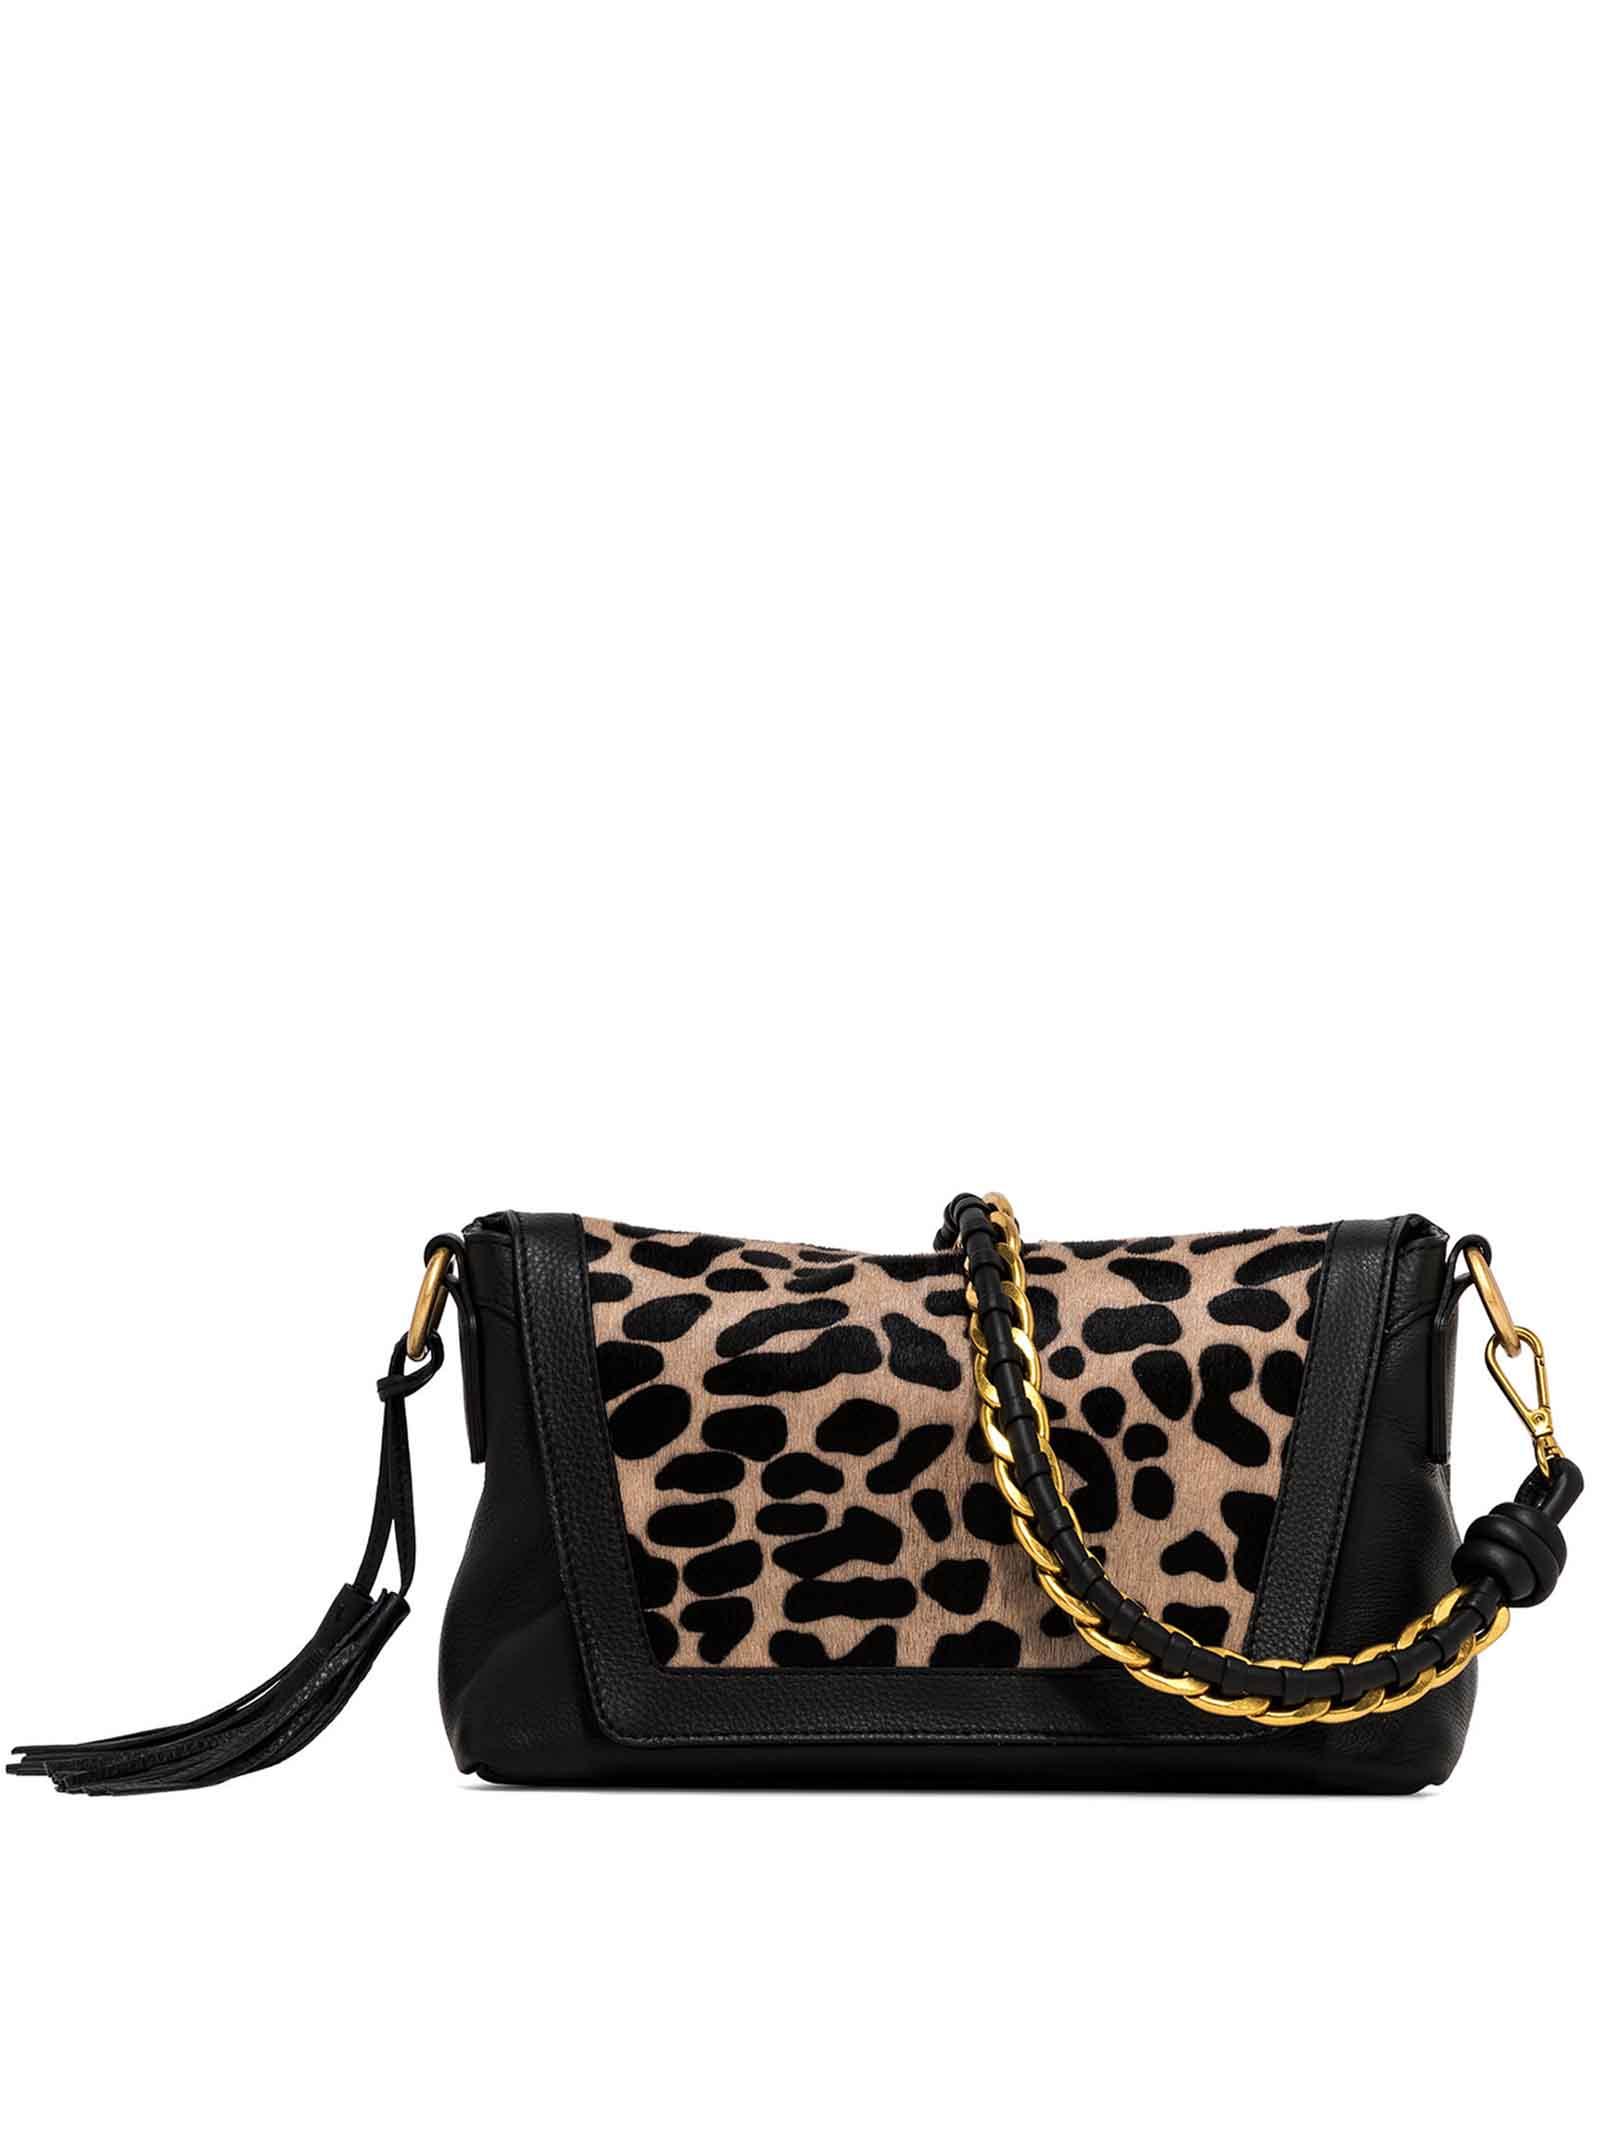 Women's Shoulder Bag Africa in Black Leather And Pony Skin Braided Handle and Adjustable and Detachable Leather Cross-body Strap Gianni Chiarini   Bags and backpacks   BS868610730